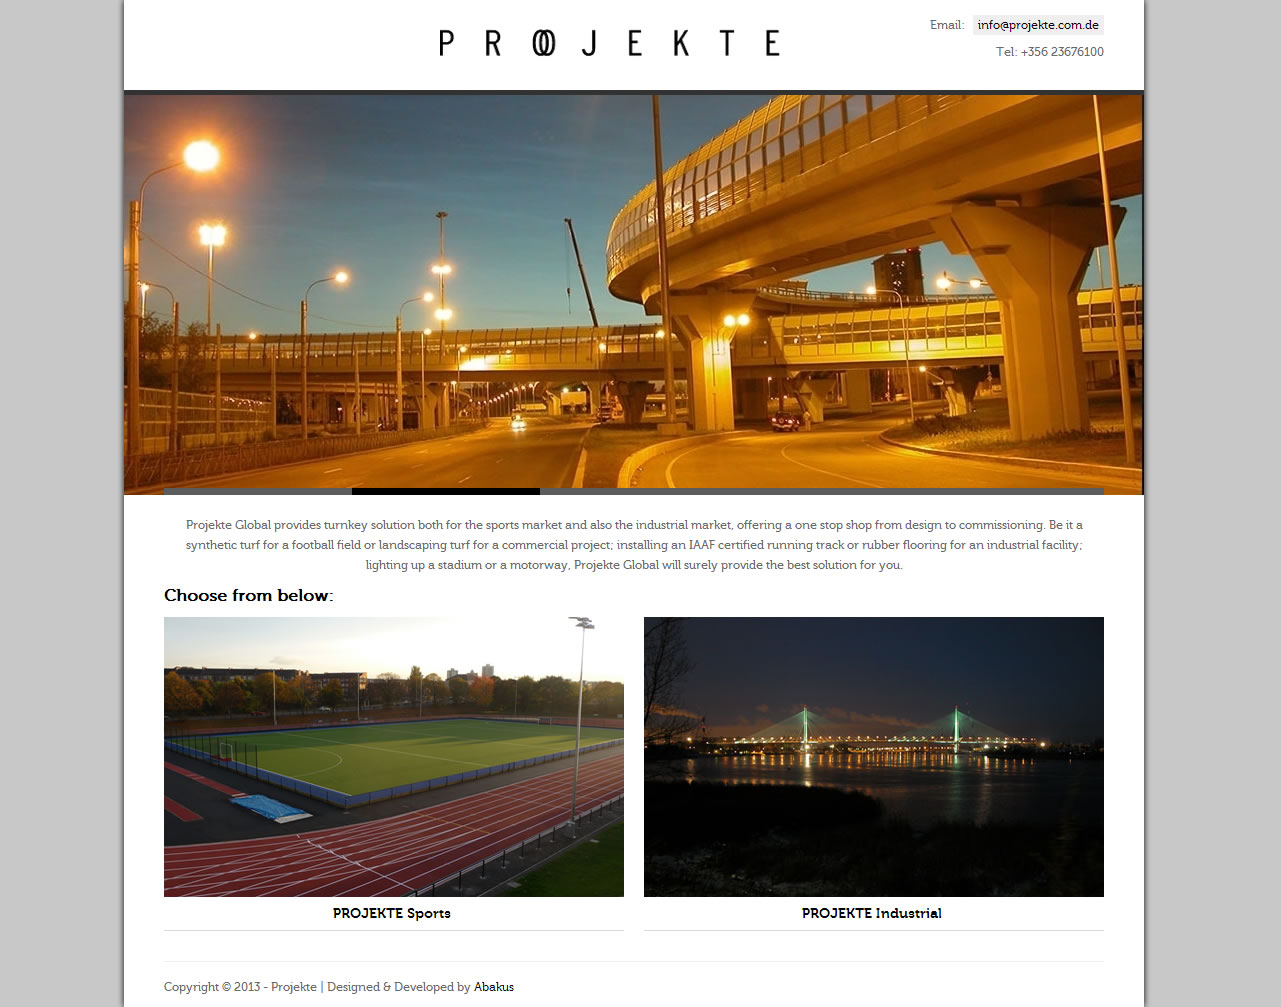 Projekte Global